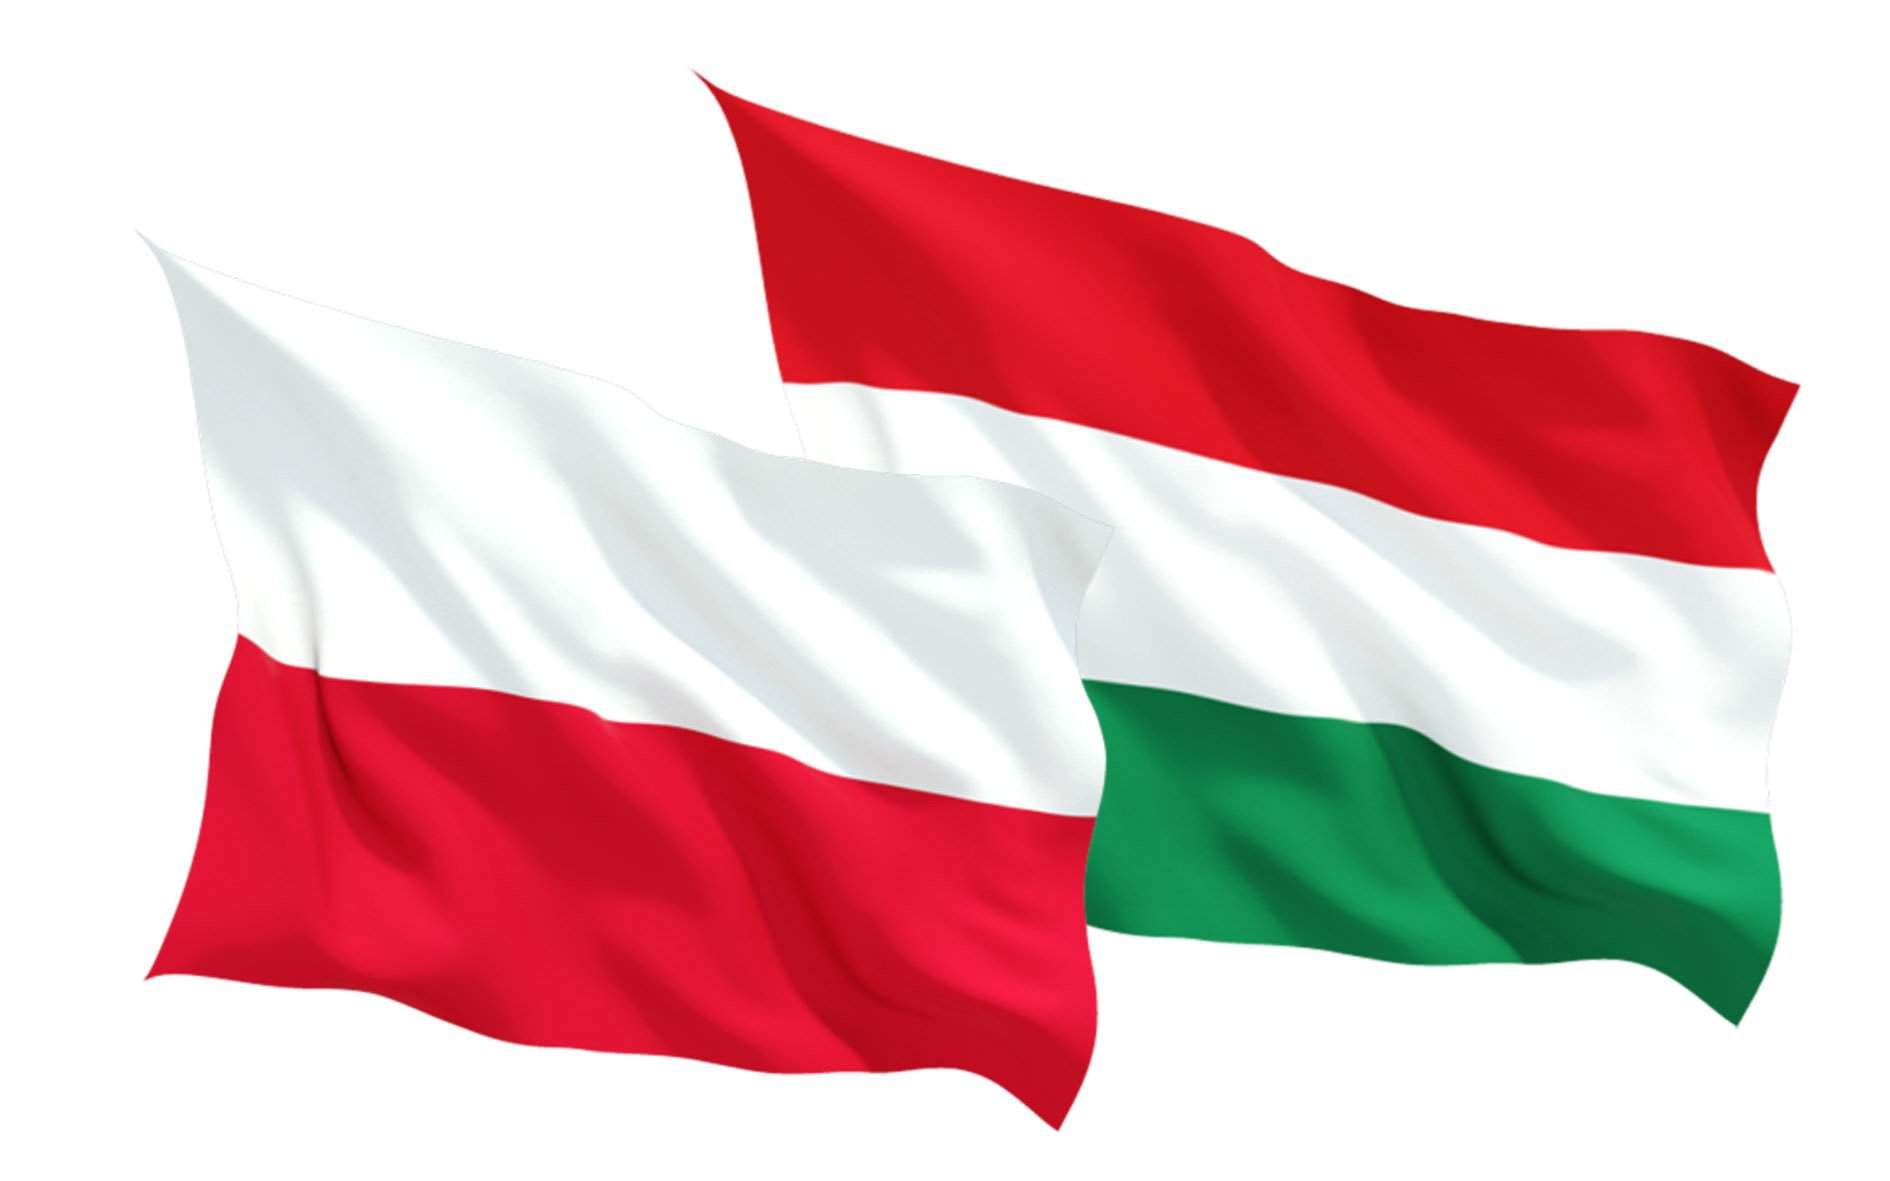 Hungarian Deputy PM: EC decision to launch Article 7 procedure against Poland 'astounding'